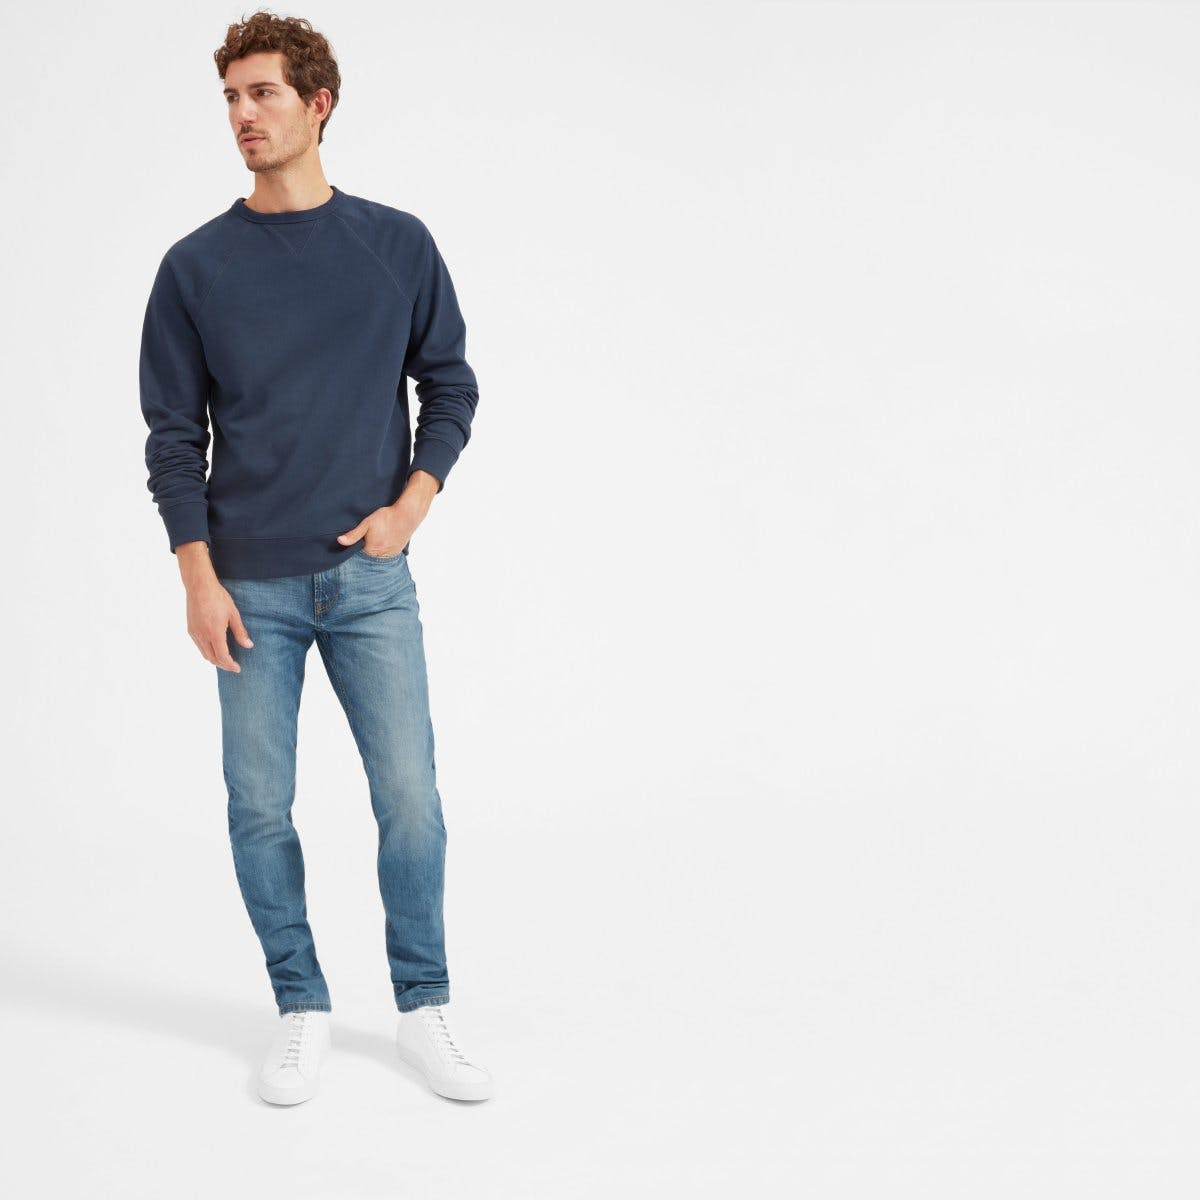 everlane, everlane jeans, everlane denim, japanese denim, slim fit jeans, straight jeans, denimblog, denim blog